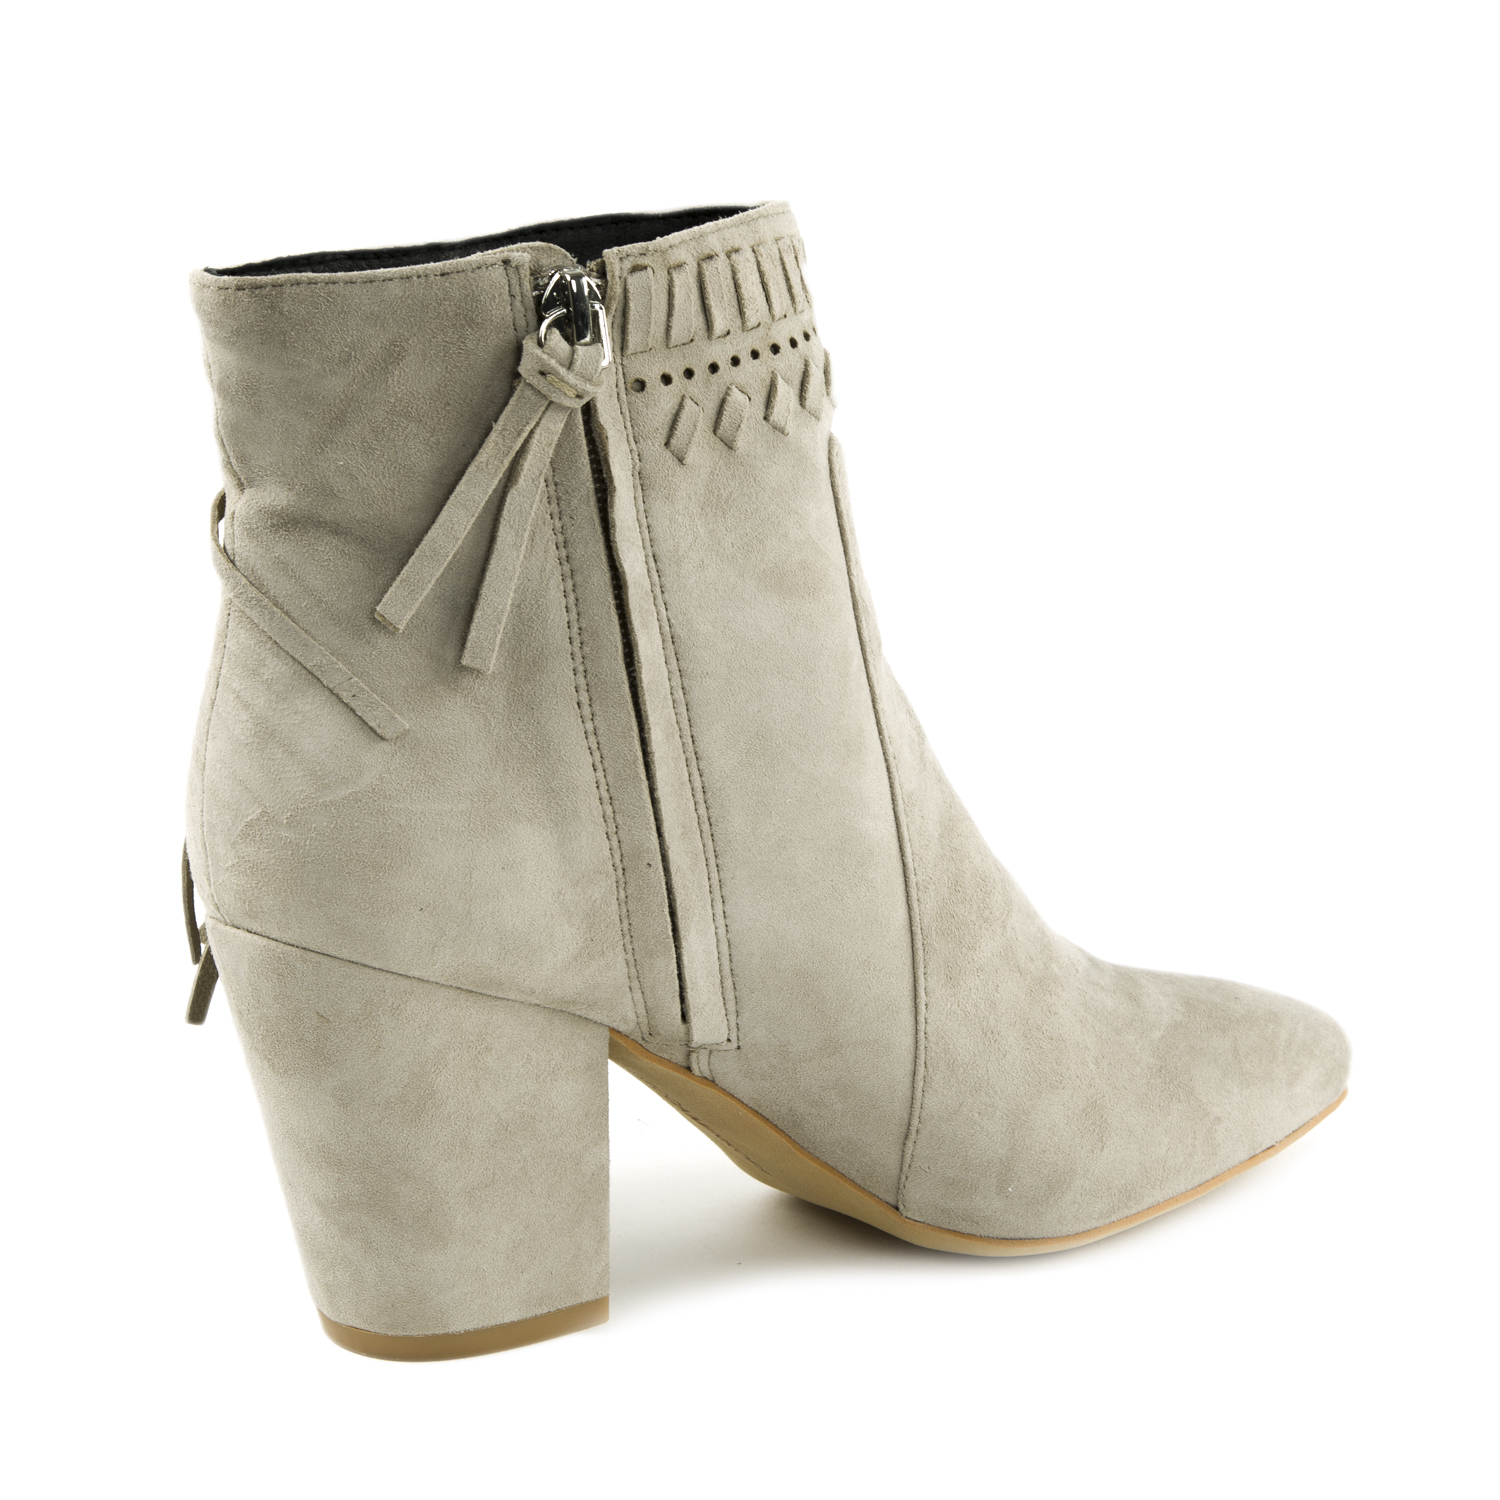 Rebecca Minkoff Suede Fringe Ankle Boots cheap pay with paypal outlet looking for RayispJ